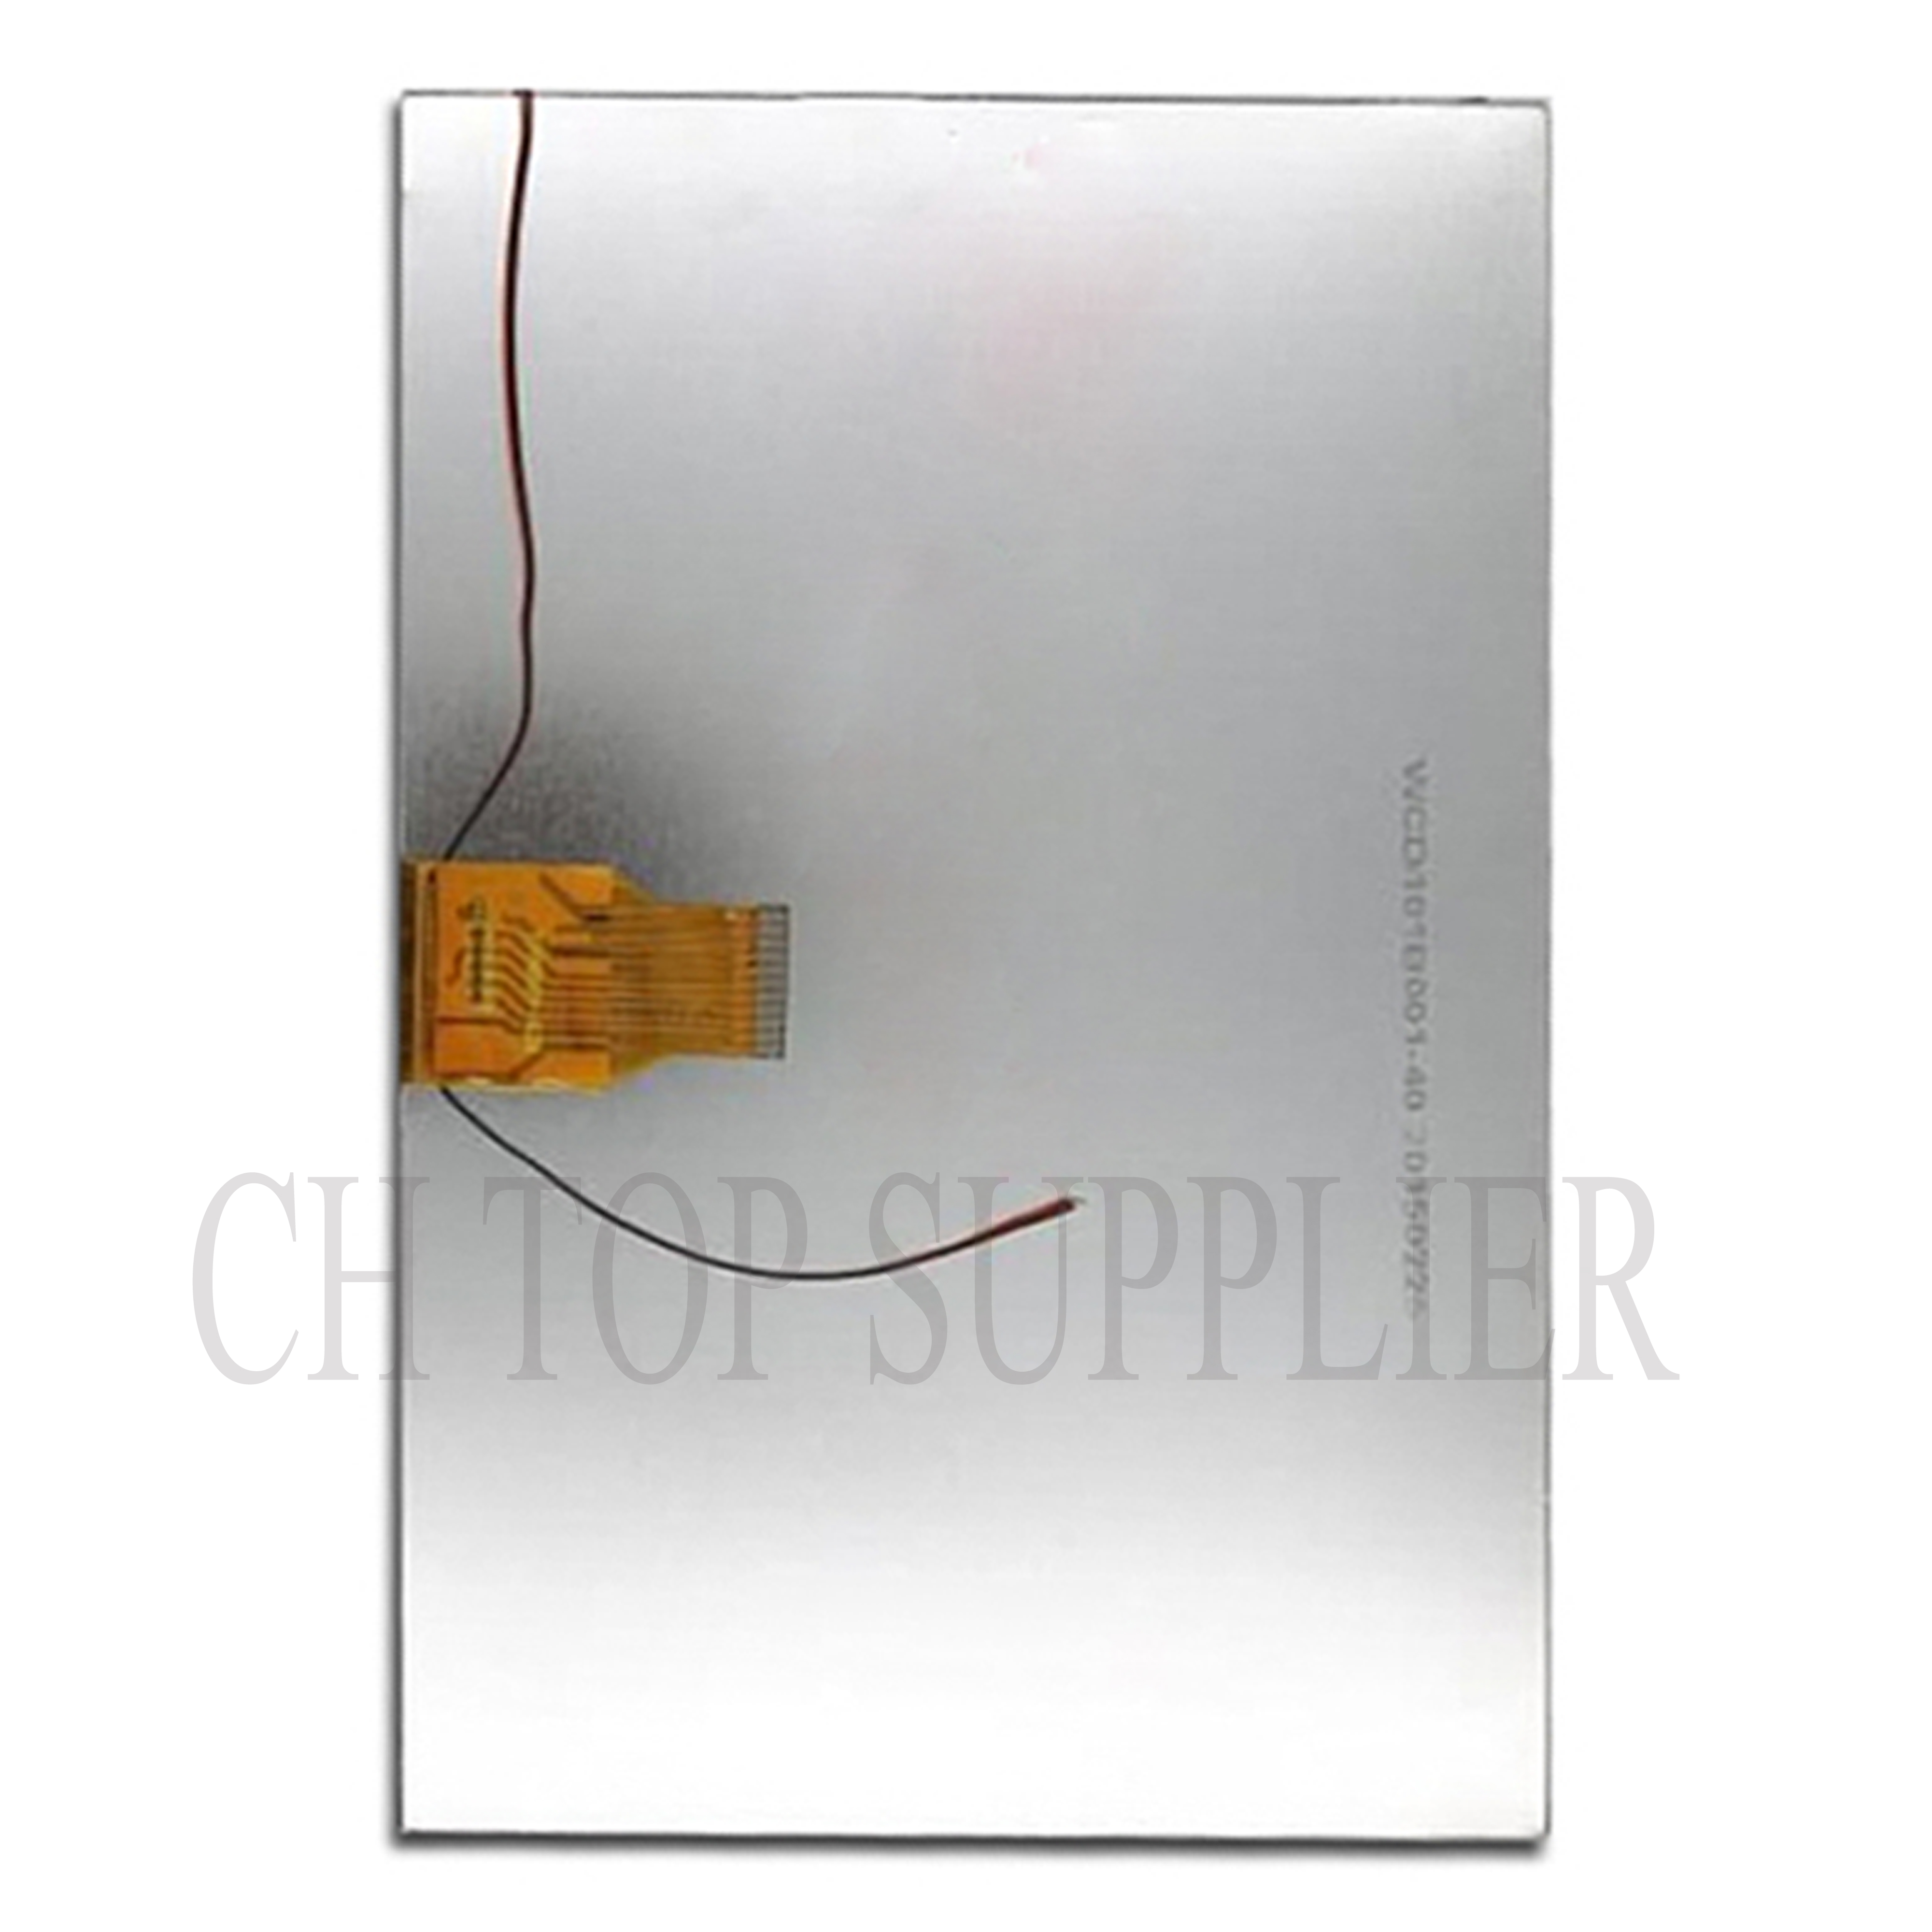 New 10.1'' inch LCD Display Sunstech TAB101DC Tablet TFT LCD Screen Matrix Replacement Panel Parts Free Shipping new lcd display 7 inch for digma hit 3g ht7070mg tablet tft 40pin screen matrix digital replacement panel free shipping